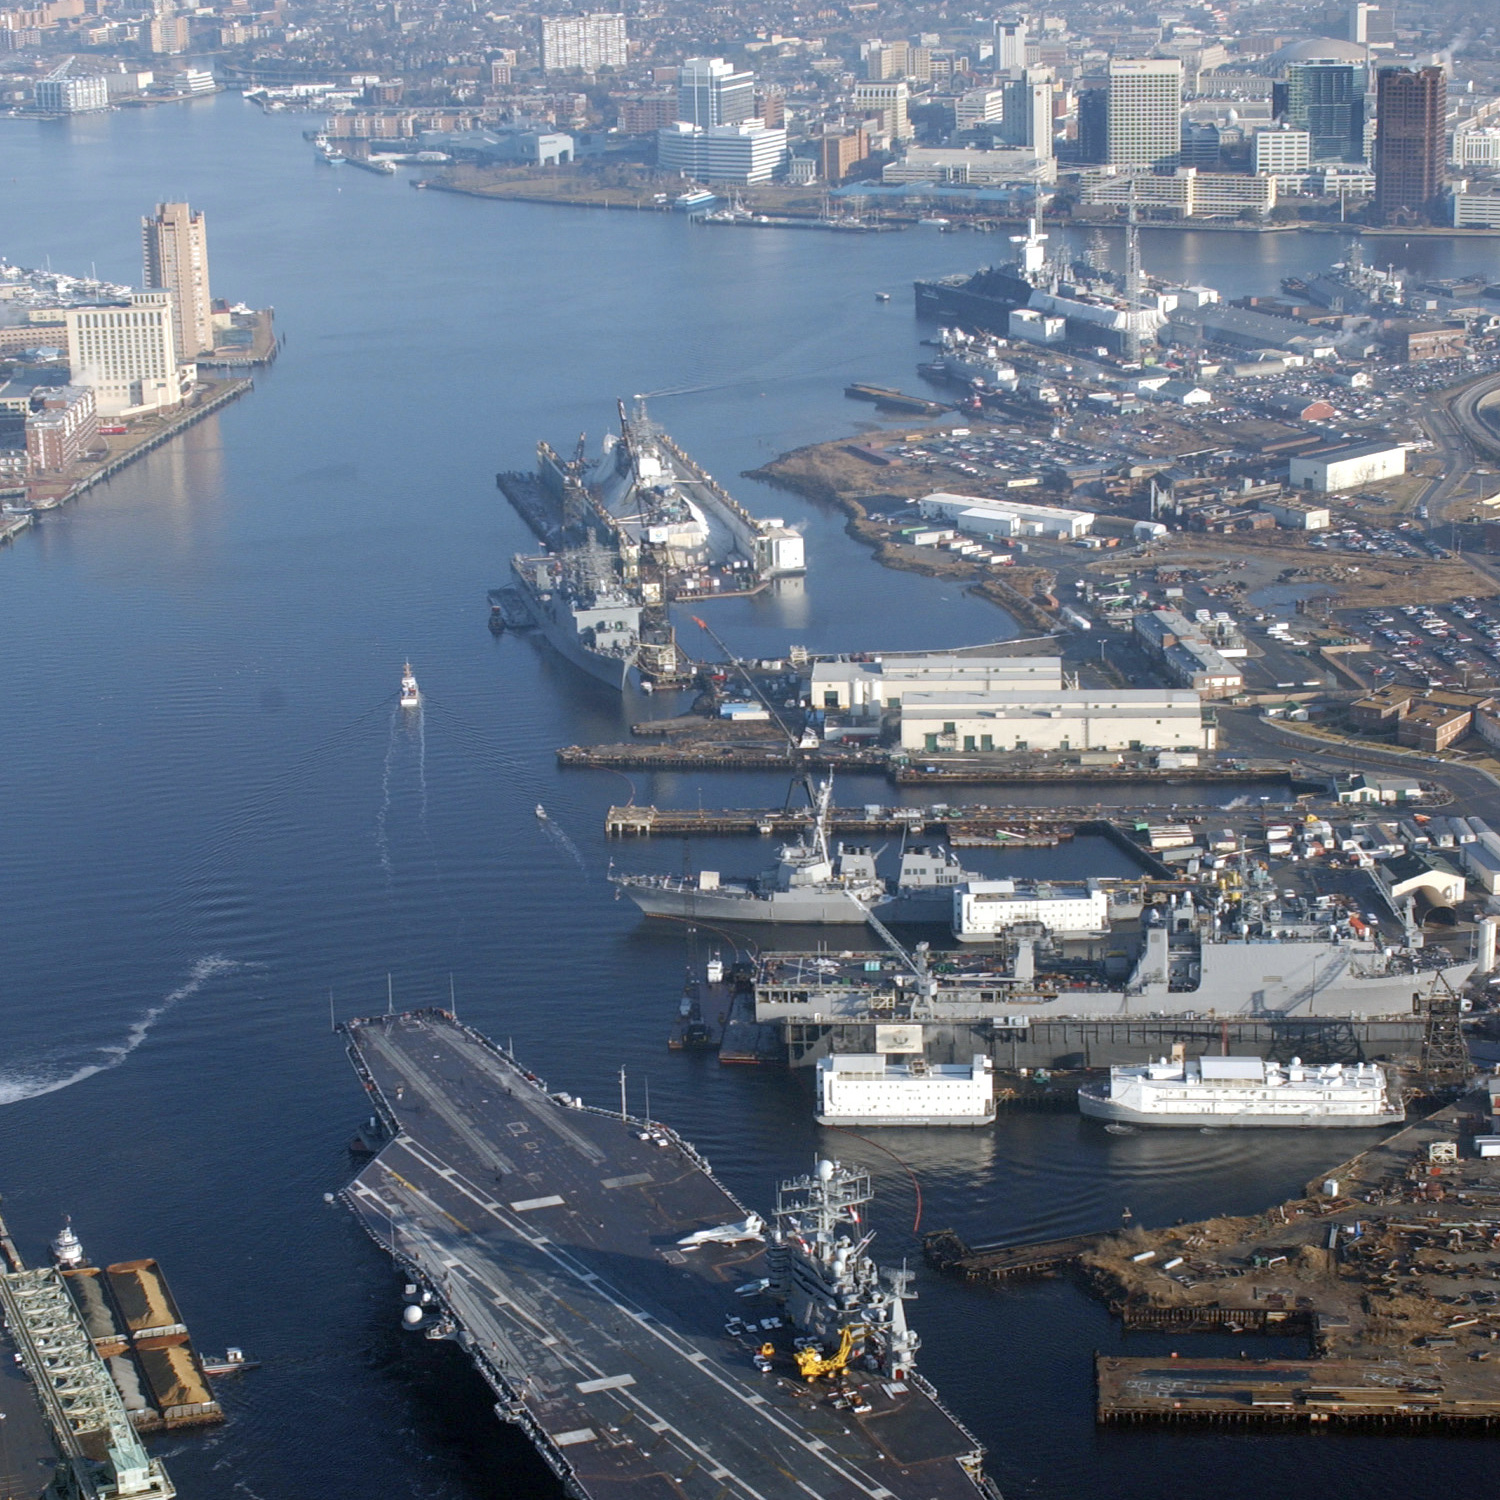 Elizabeth River dividing Portsmouth and Norfolk, Virginia. (U.S. Navy/ Public Domain)